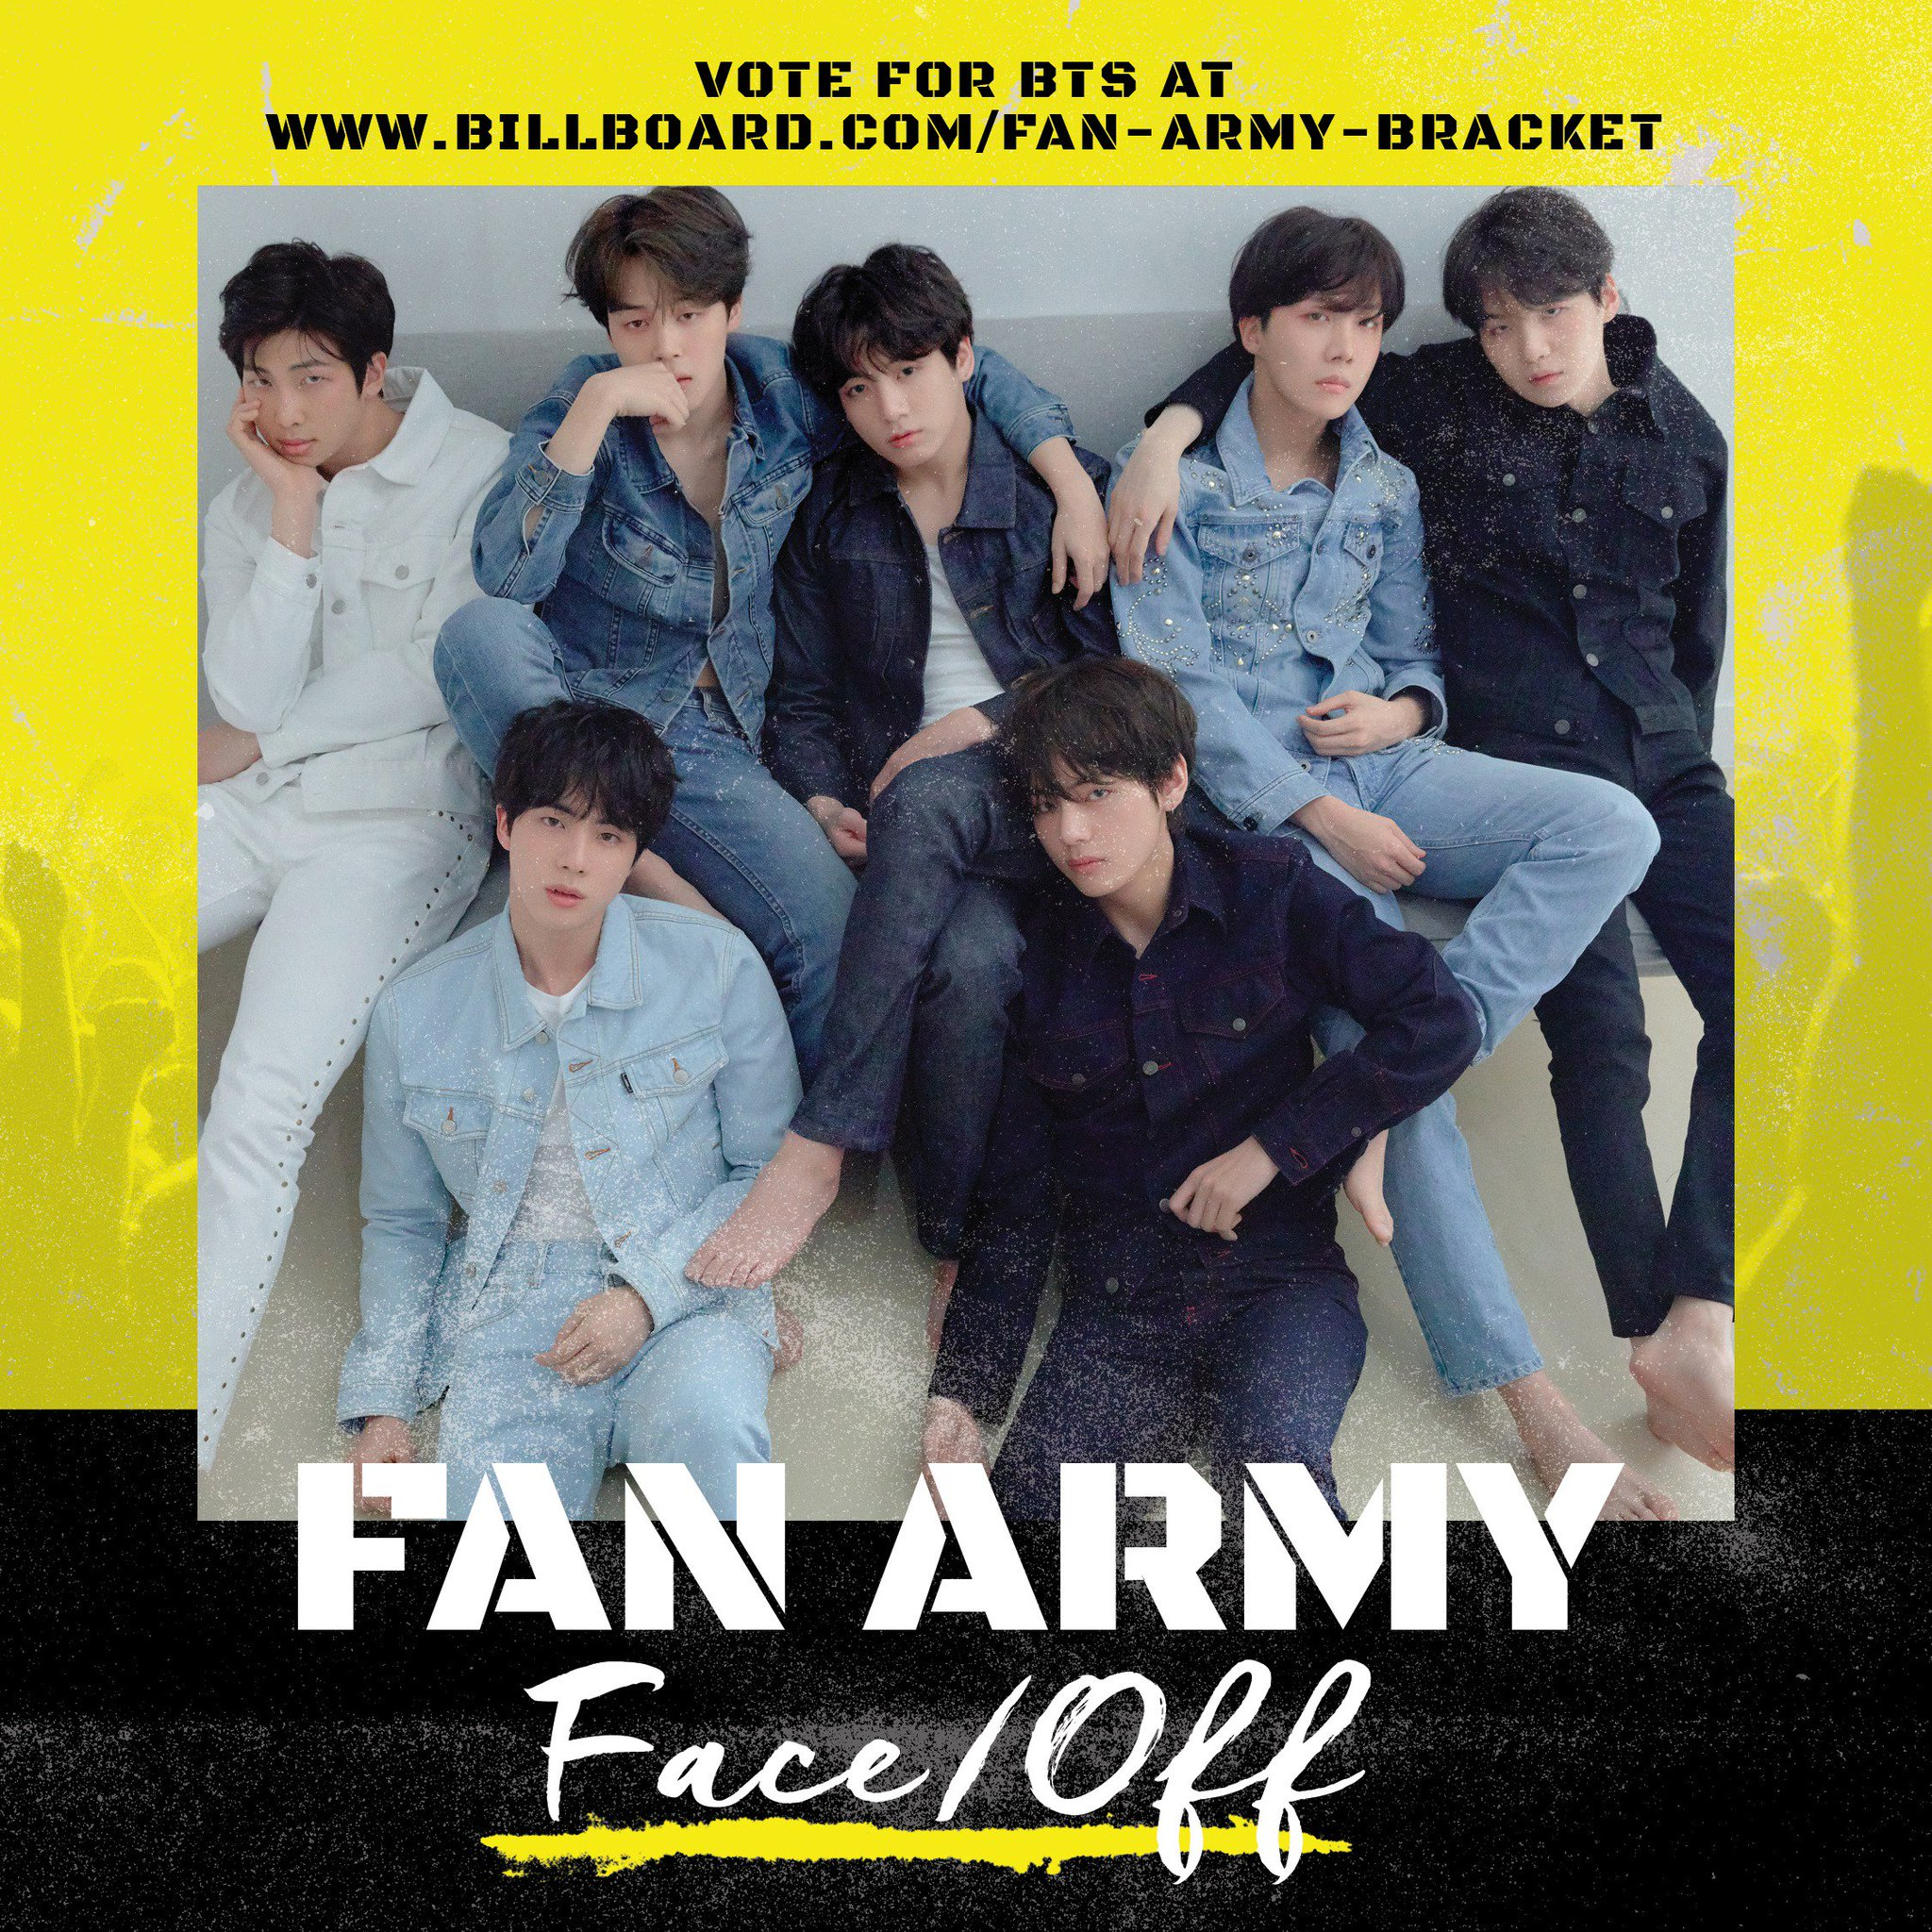 #BTSARMY vs. #Harries  Vote in the #FanArmyFaceOff: https://t.co/Lr94E5Gtuc https://t.co/JGQj1ppDeM